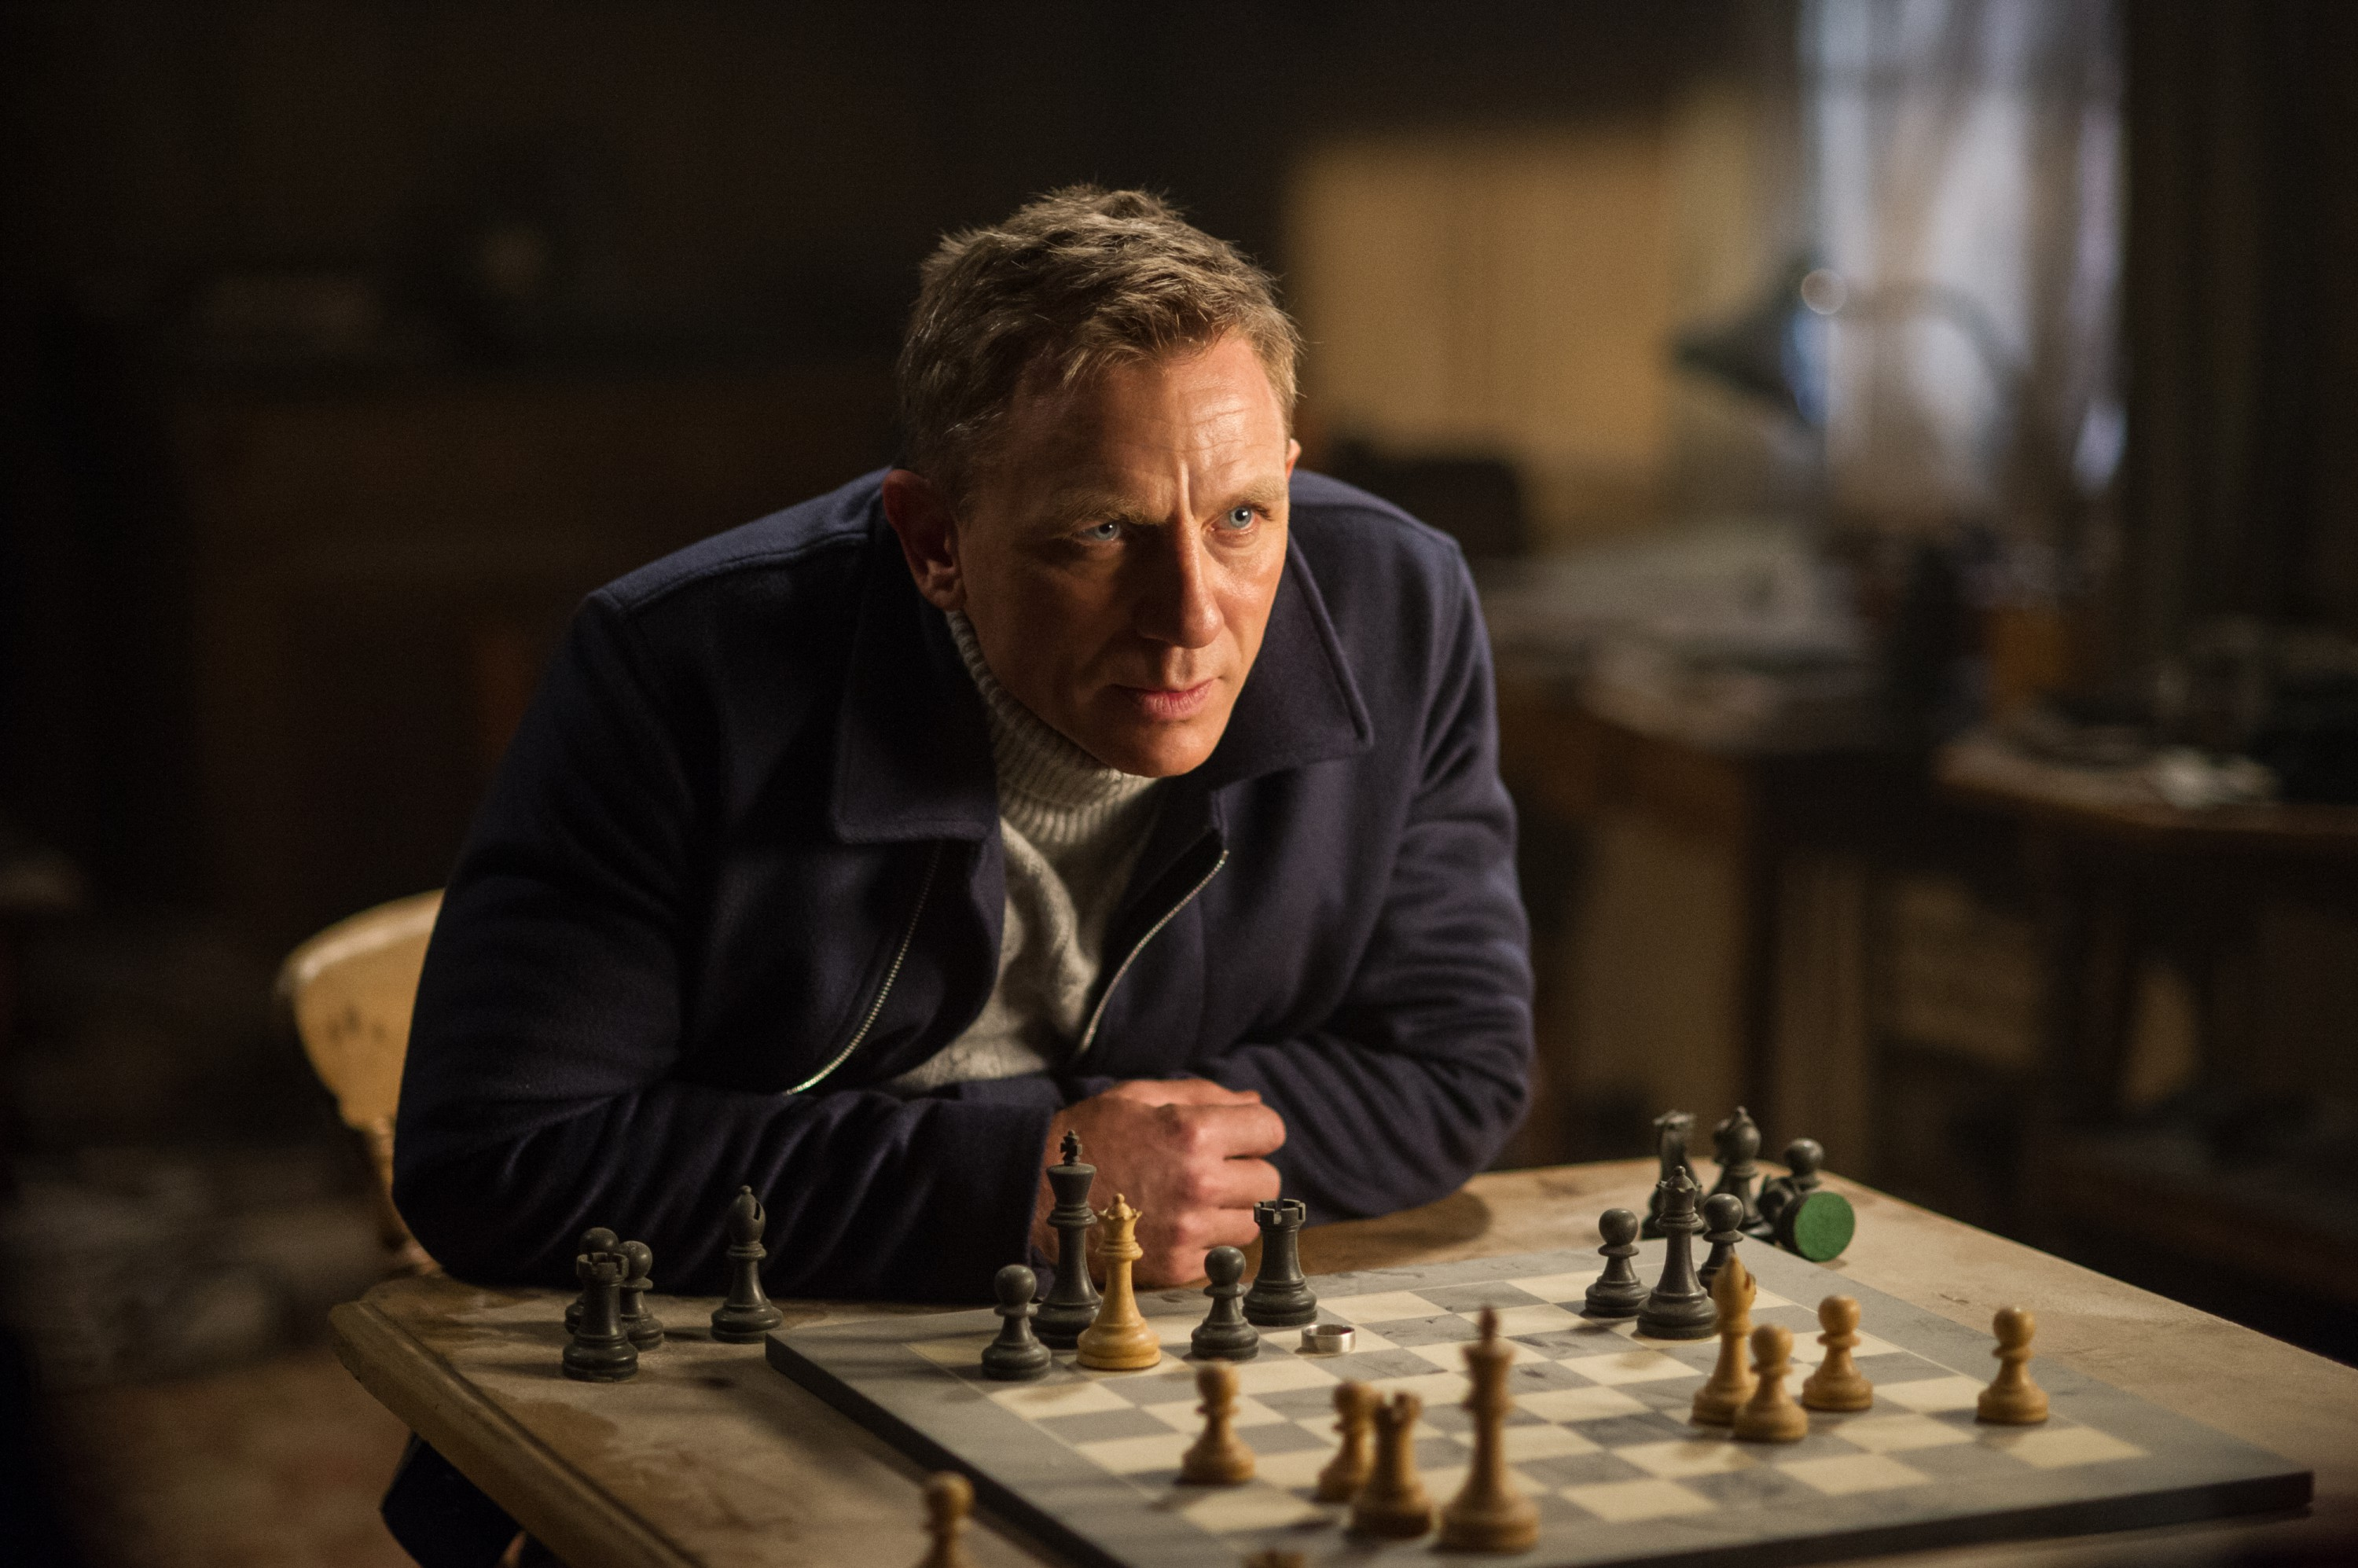 007 Spectre: il ventiquattresimo film di James Bond in onda questa sera su TV8